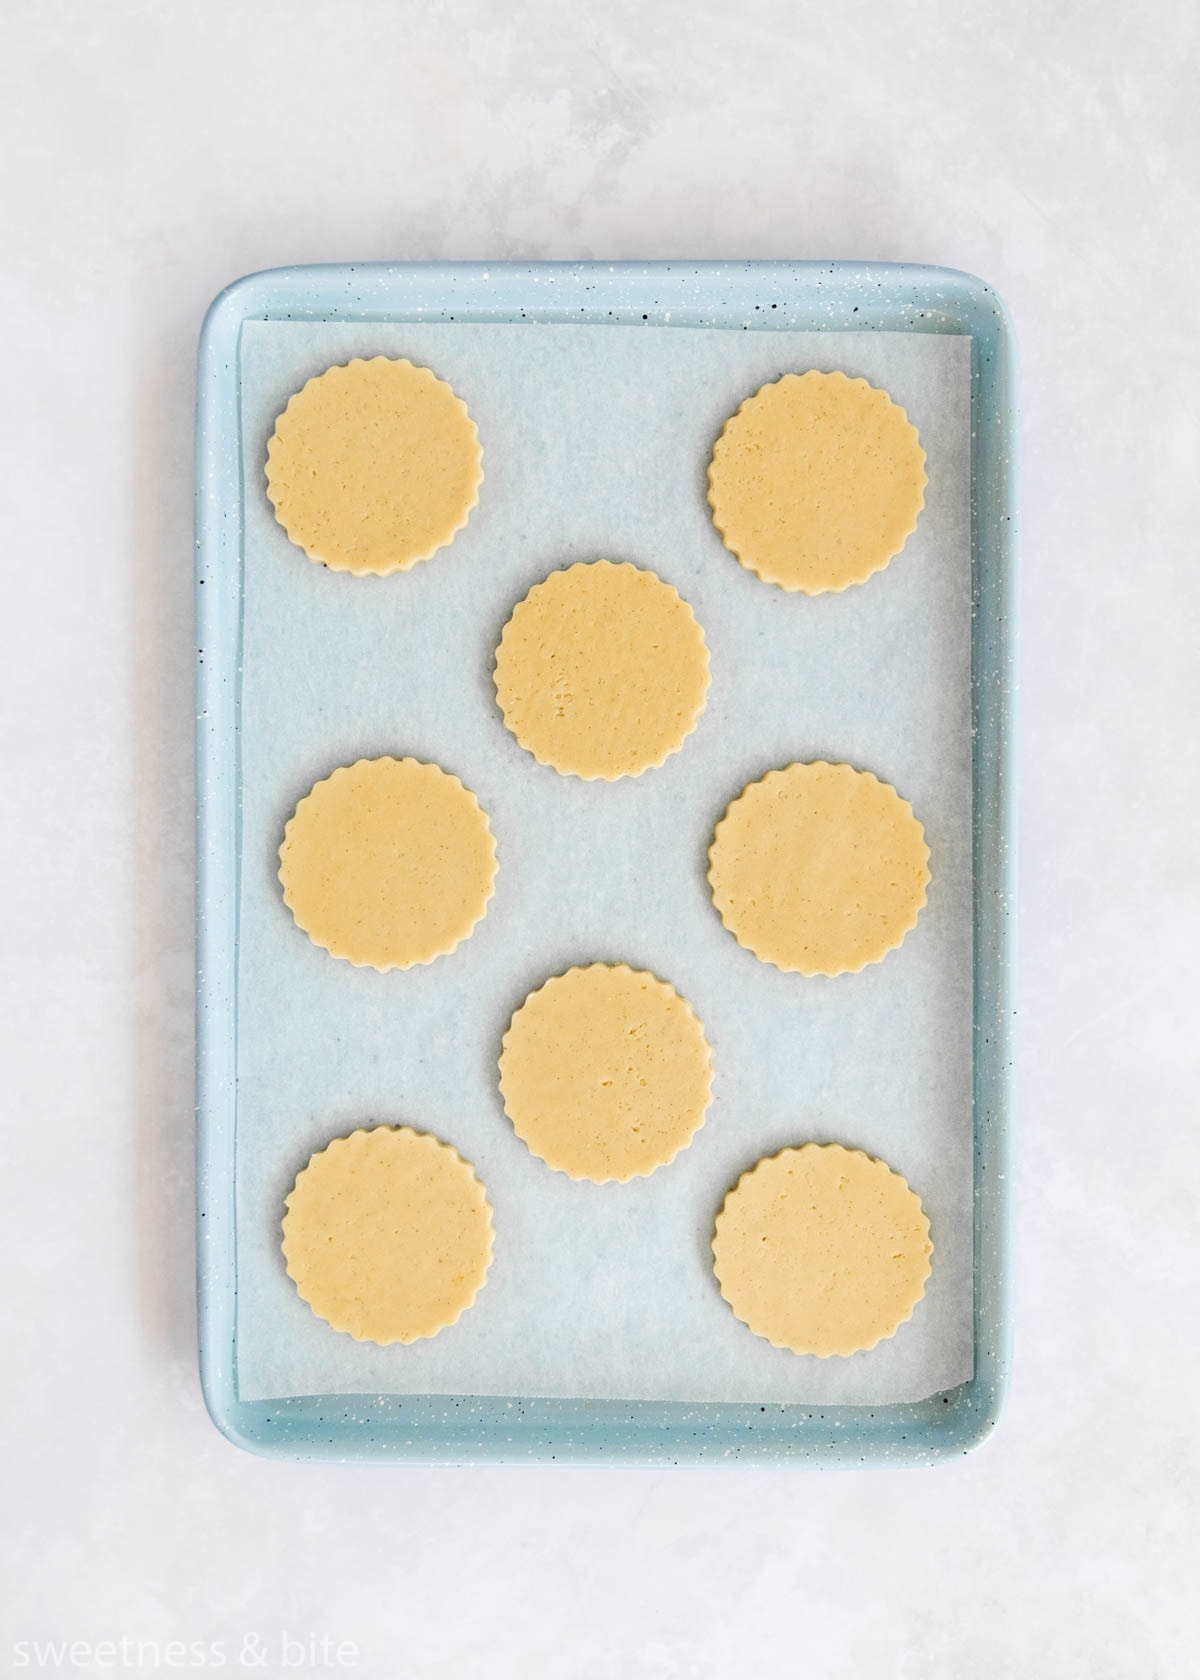 8 scalloped circle shaped cookie dough pieces on a blue cookie sheet.